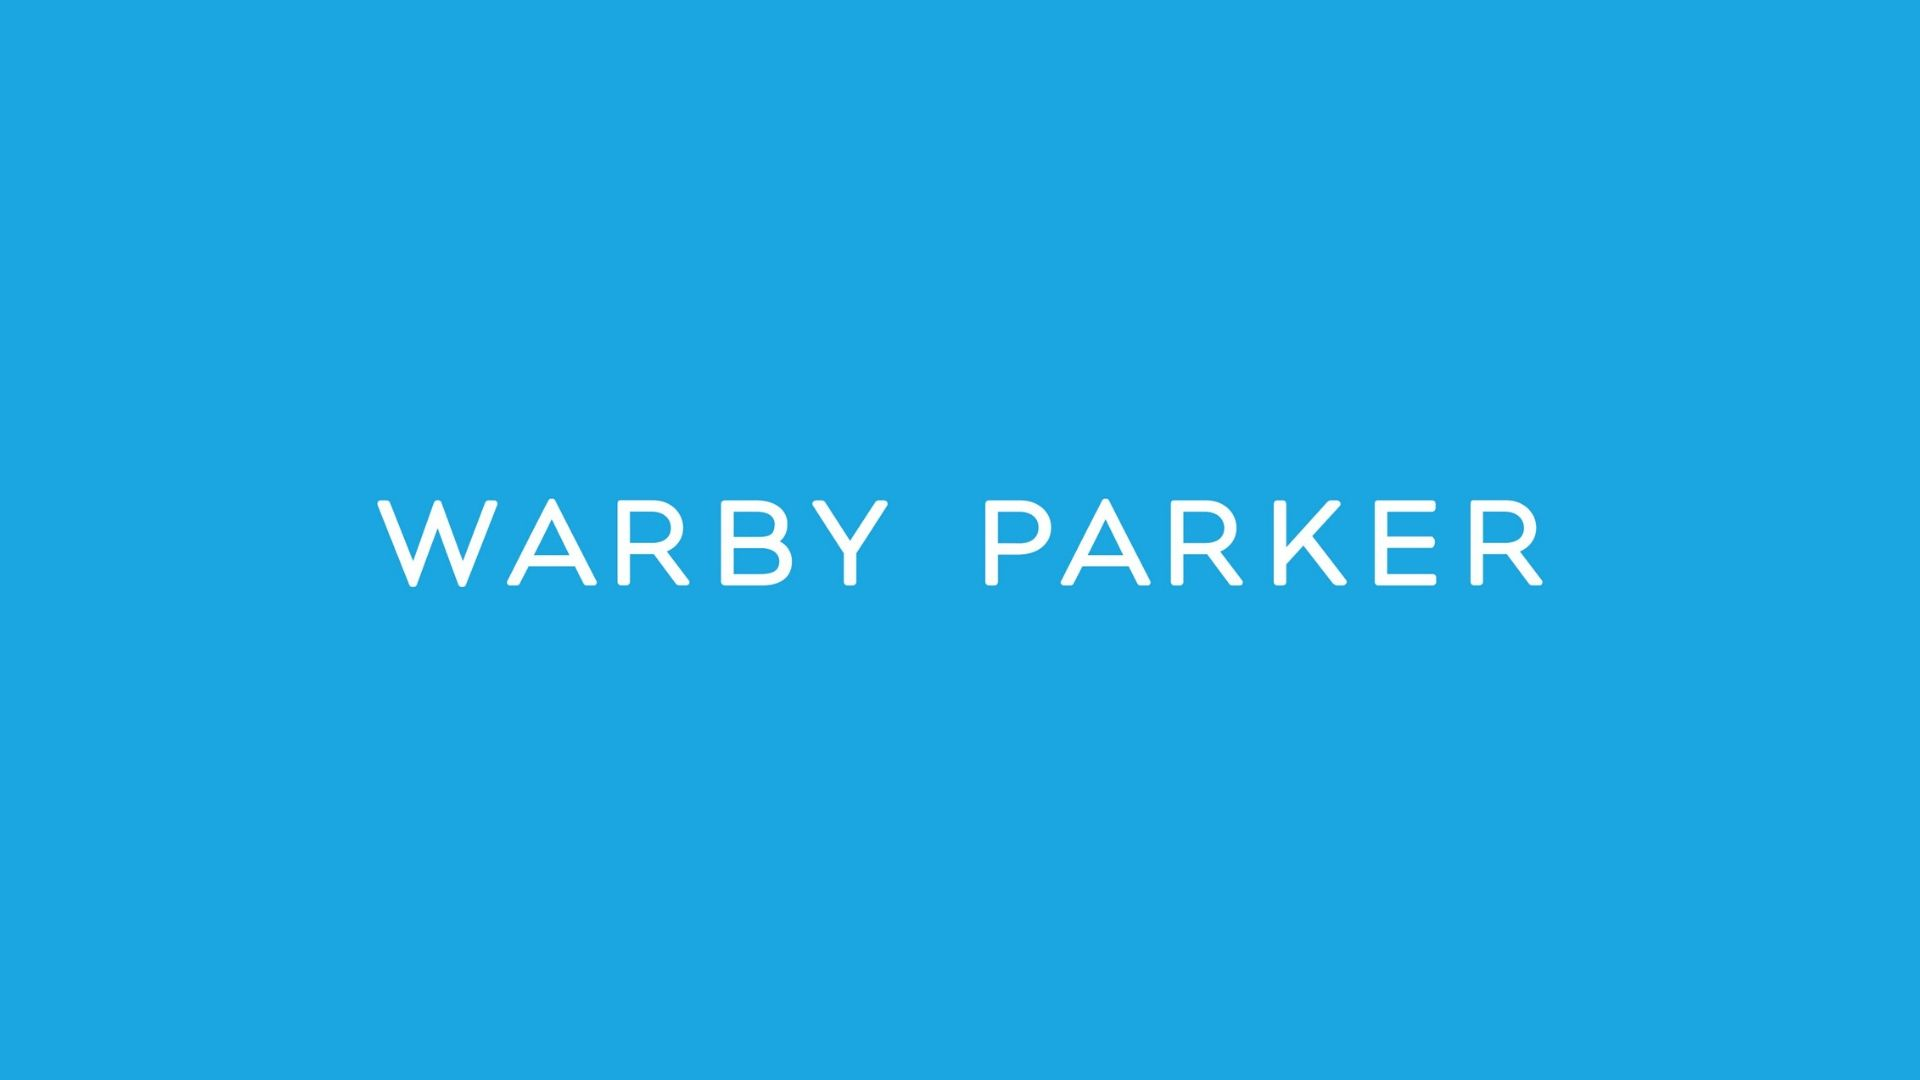 Warby Parker Competitors